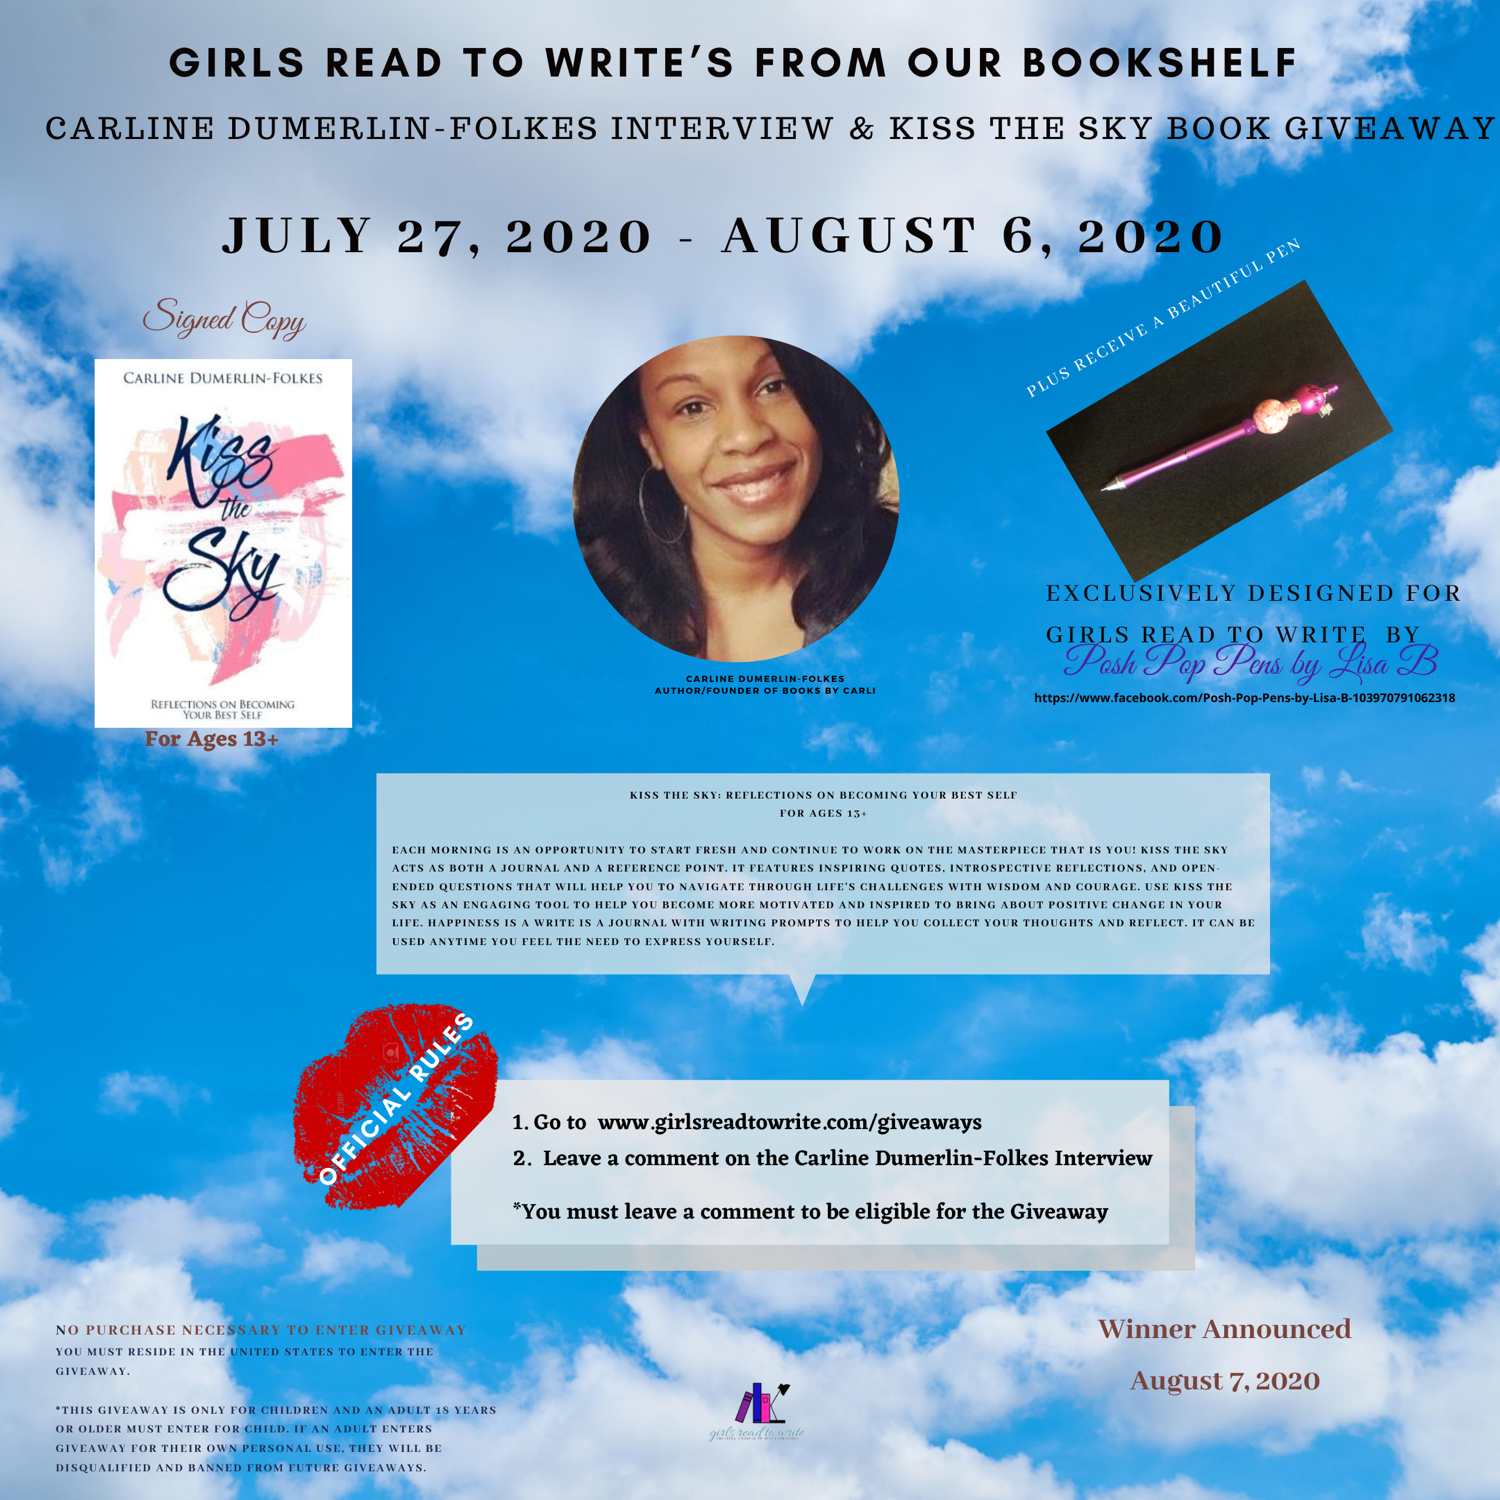 Carline DF Interview & Kiss the Sky Giveaway